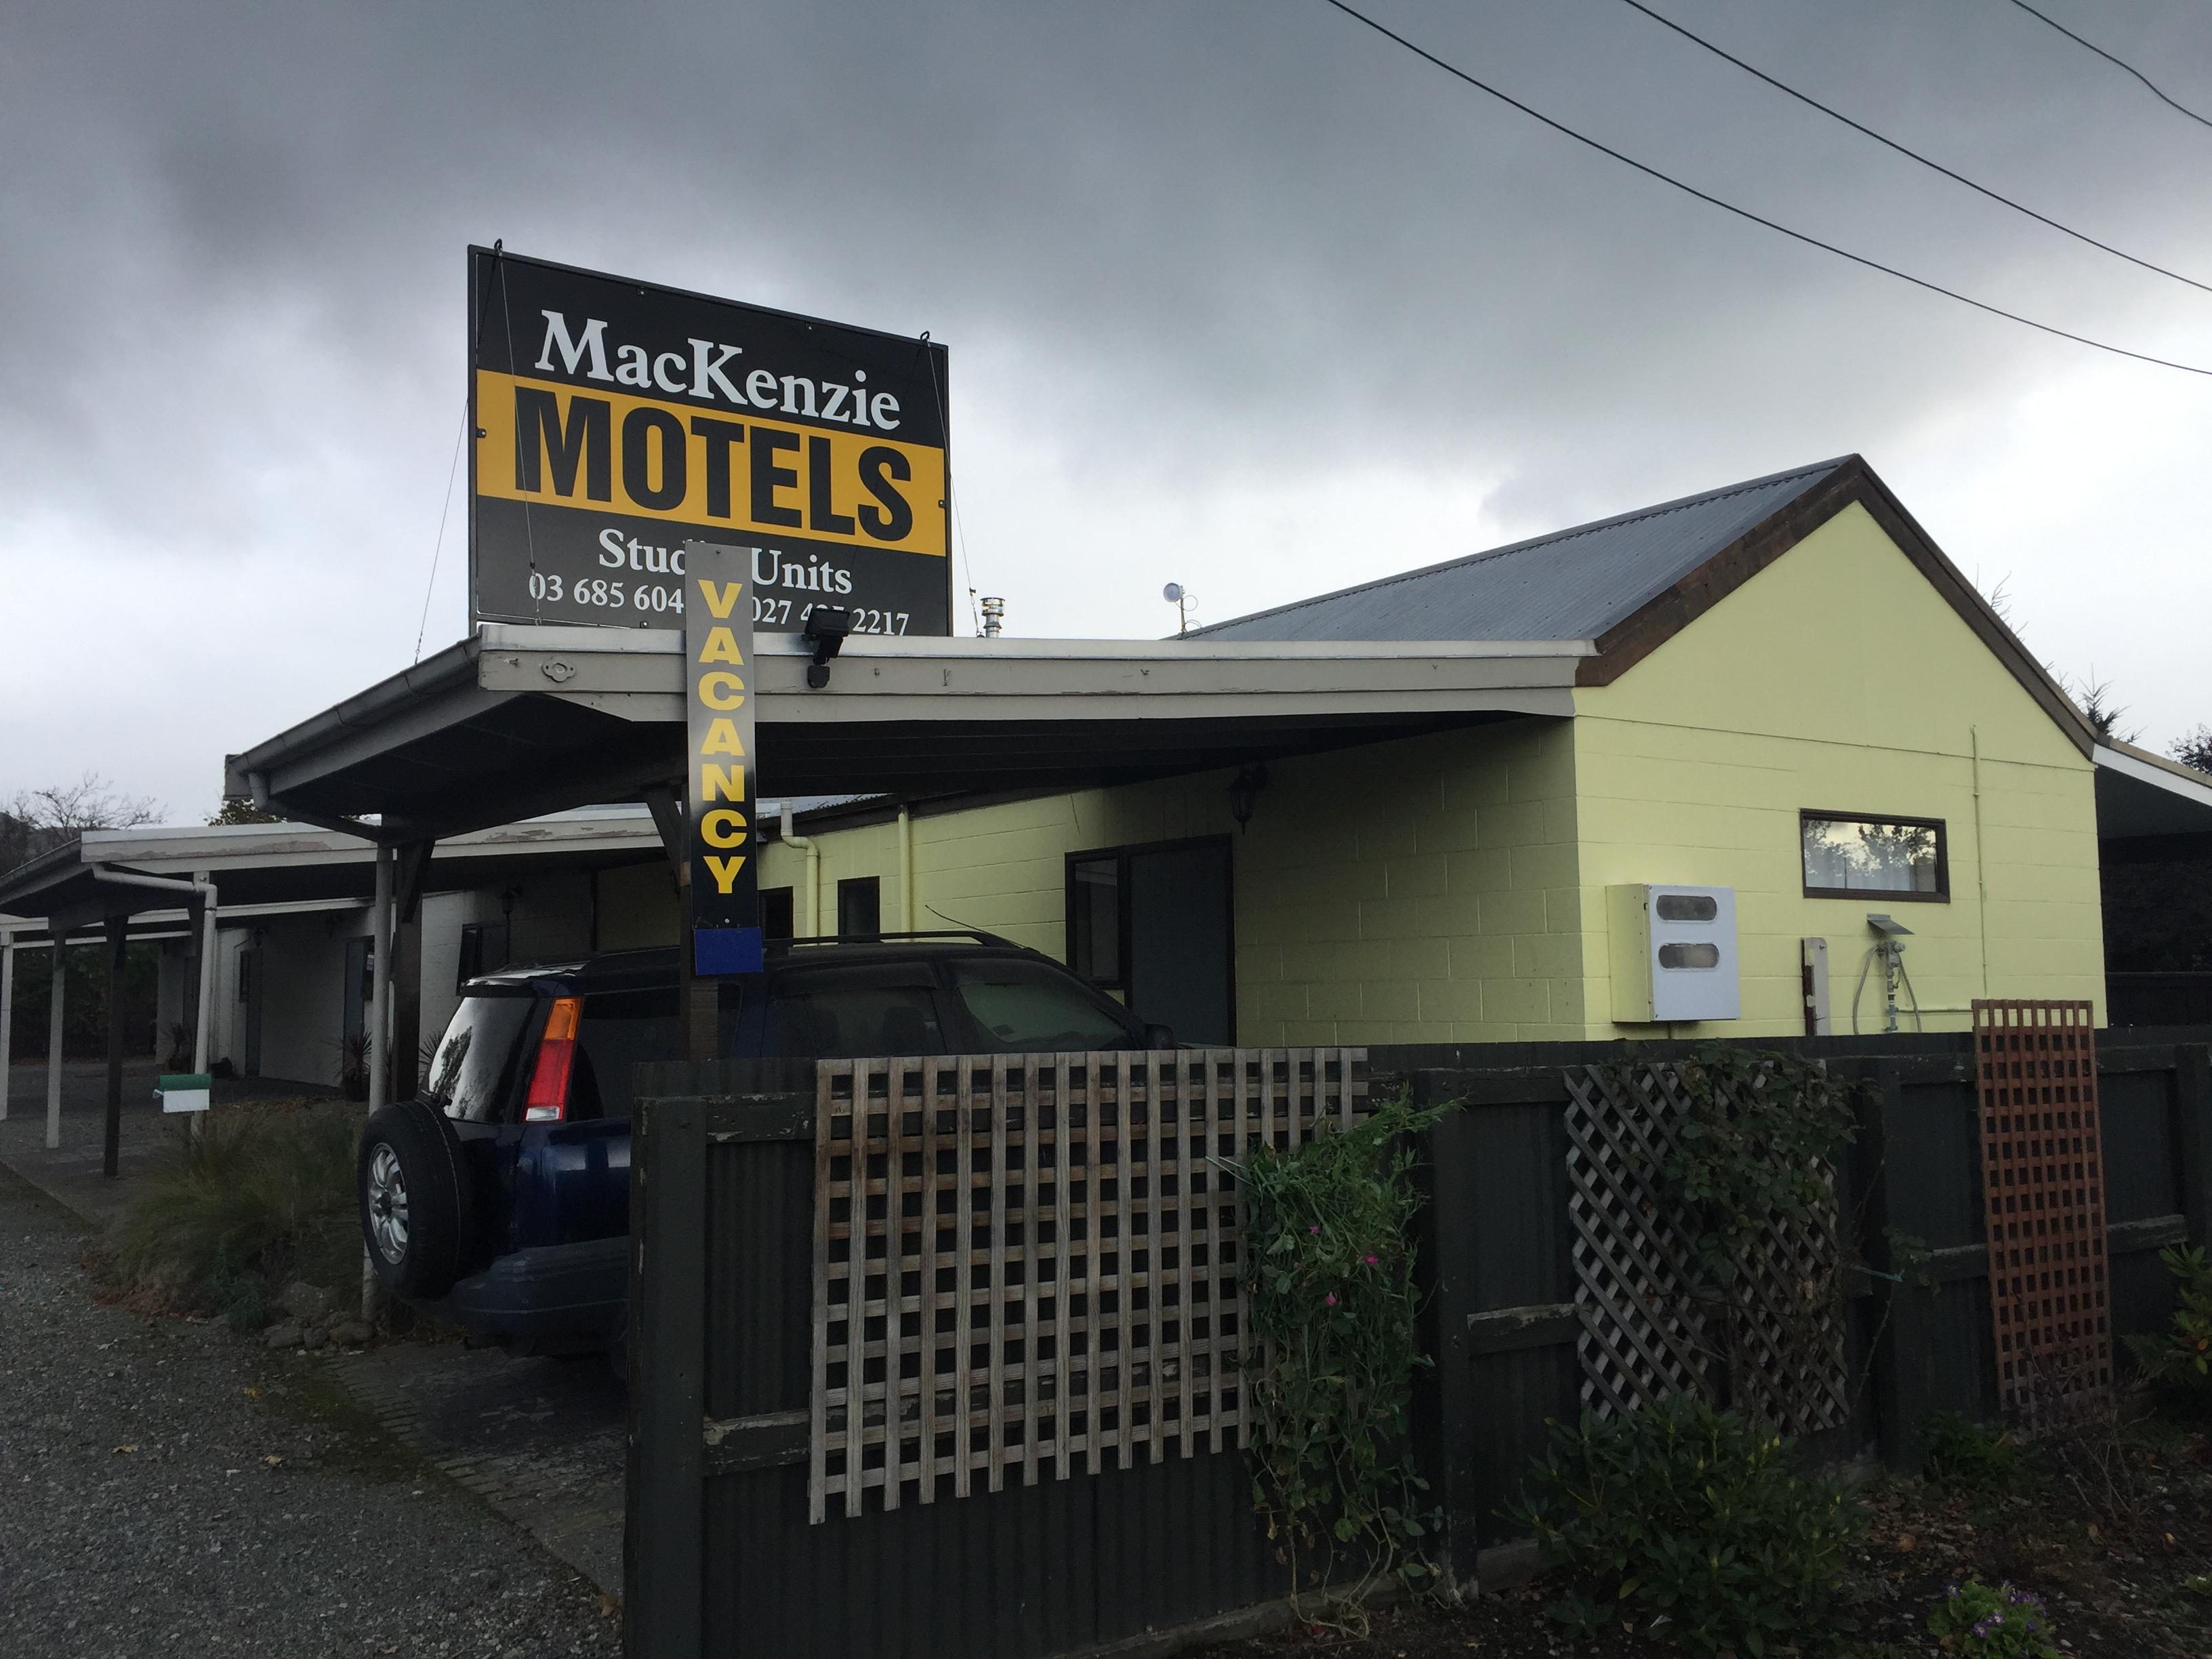 Mackenzie Motels